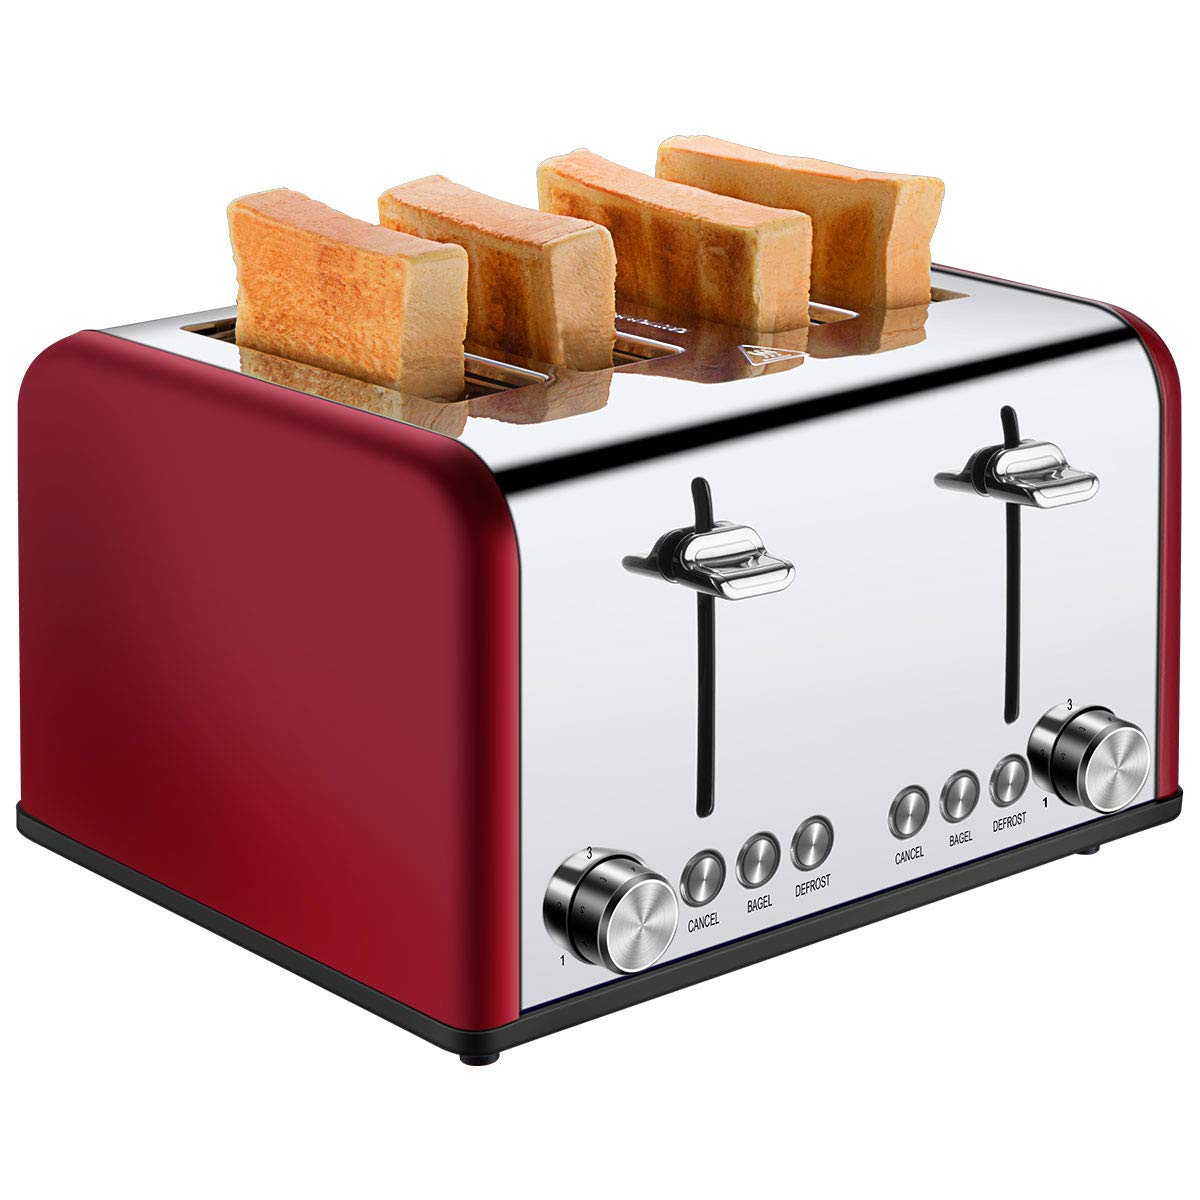 4 Slice Toaster, CUSIBOX Extra Wide Slots Stainless Steel Four Slice Toaster, BAGEL/DEFROST/CANCEL Function, 1650W, Red